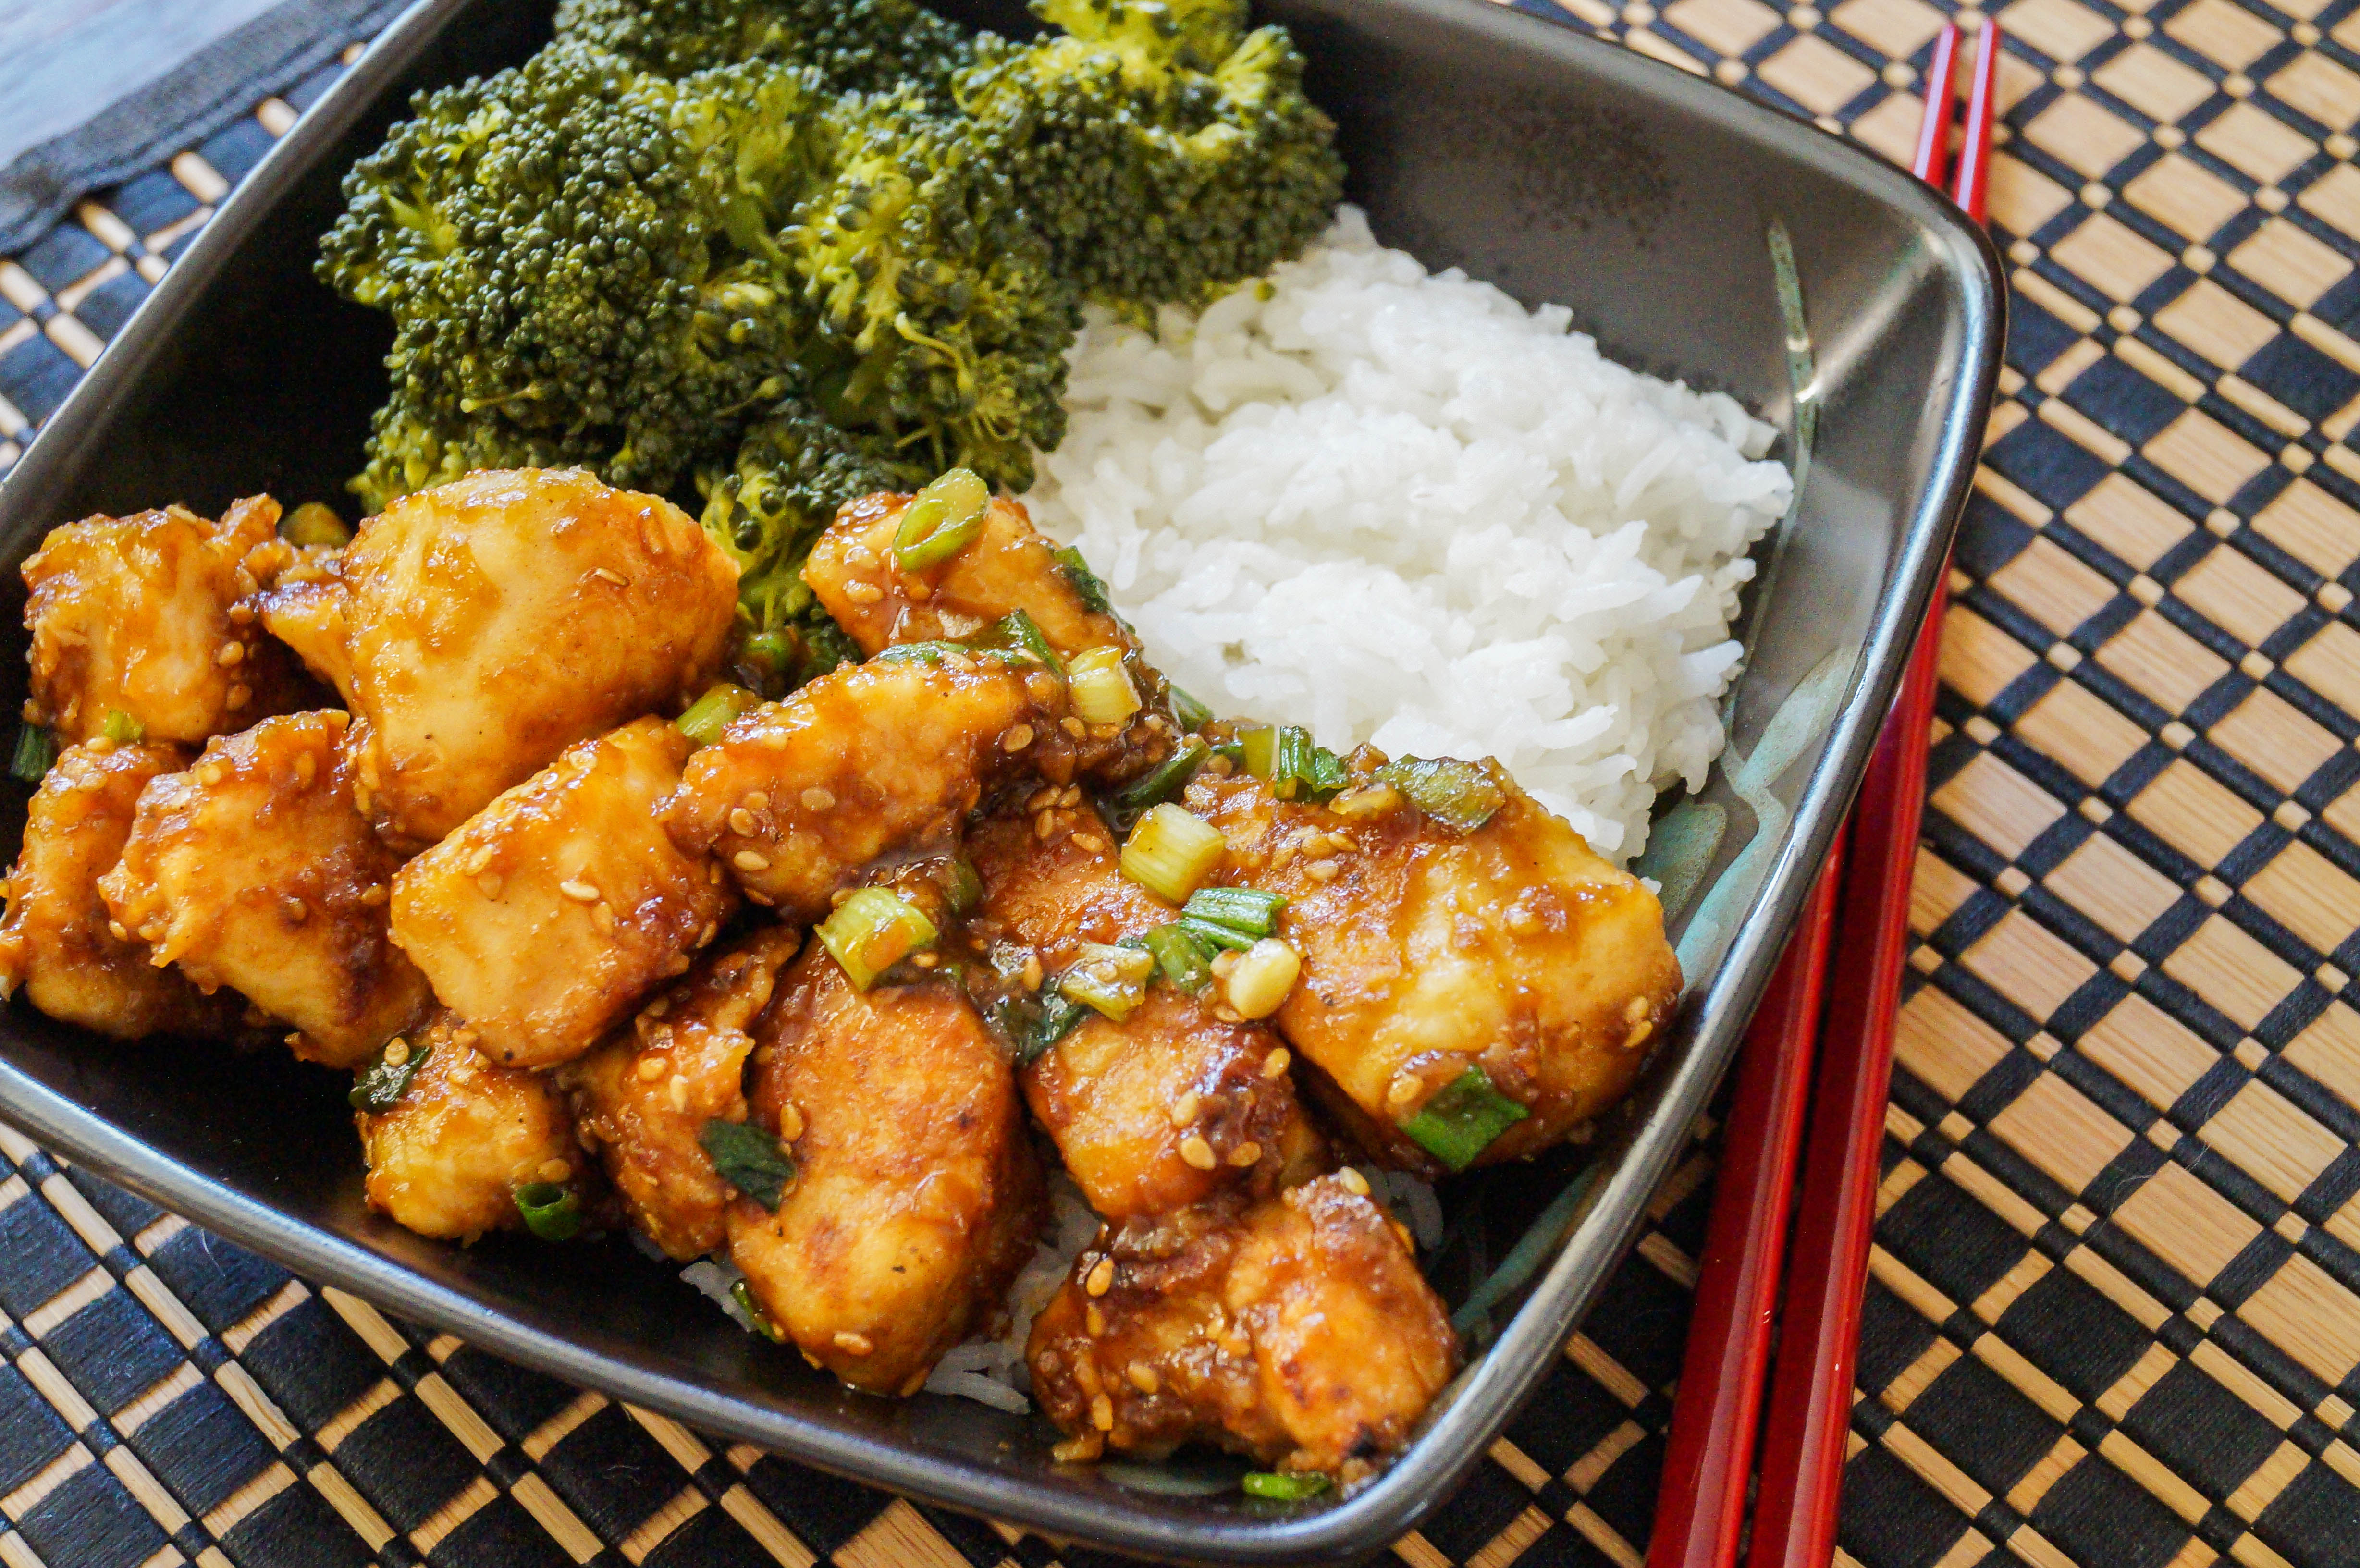 lighter side sesame chicken sesame chicken lighter sesame chicken